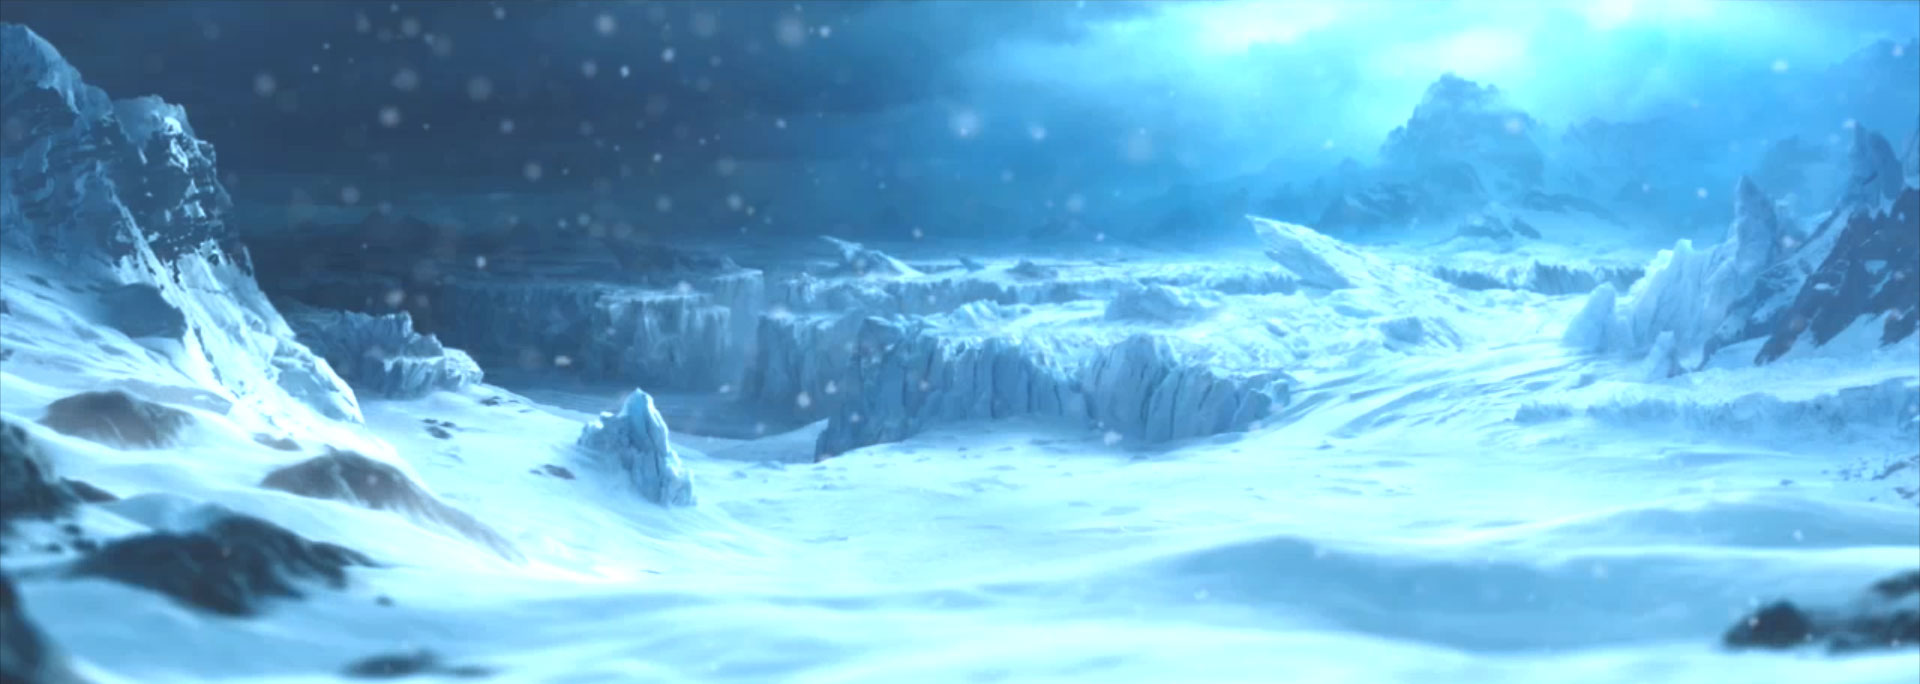 File Name 981574 High Res Blizzard Wallpapers 981574 Images 1920x684